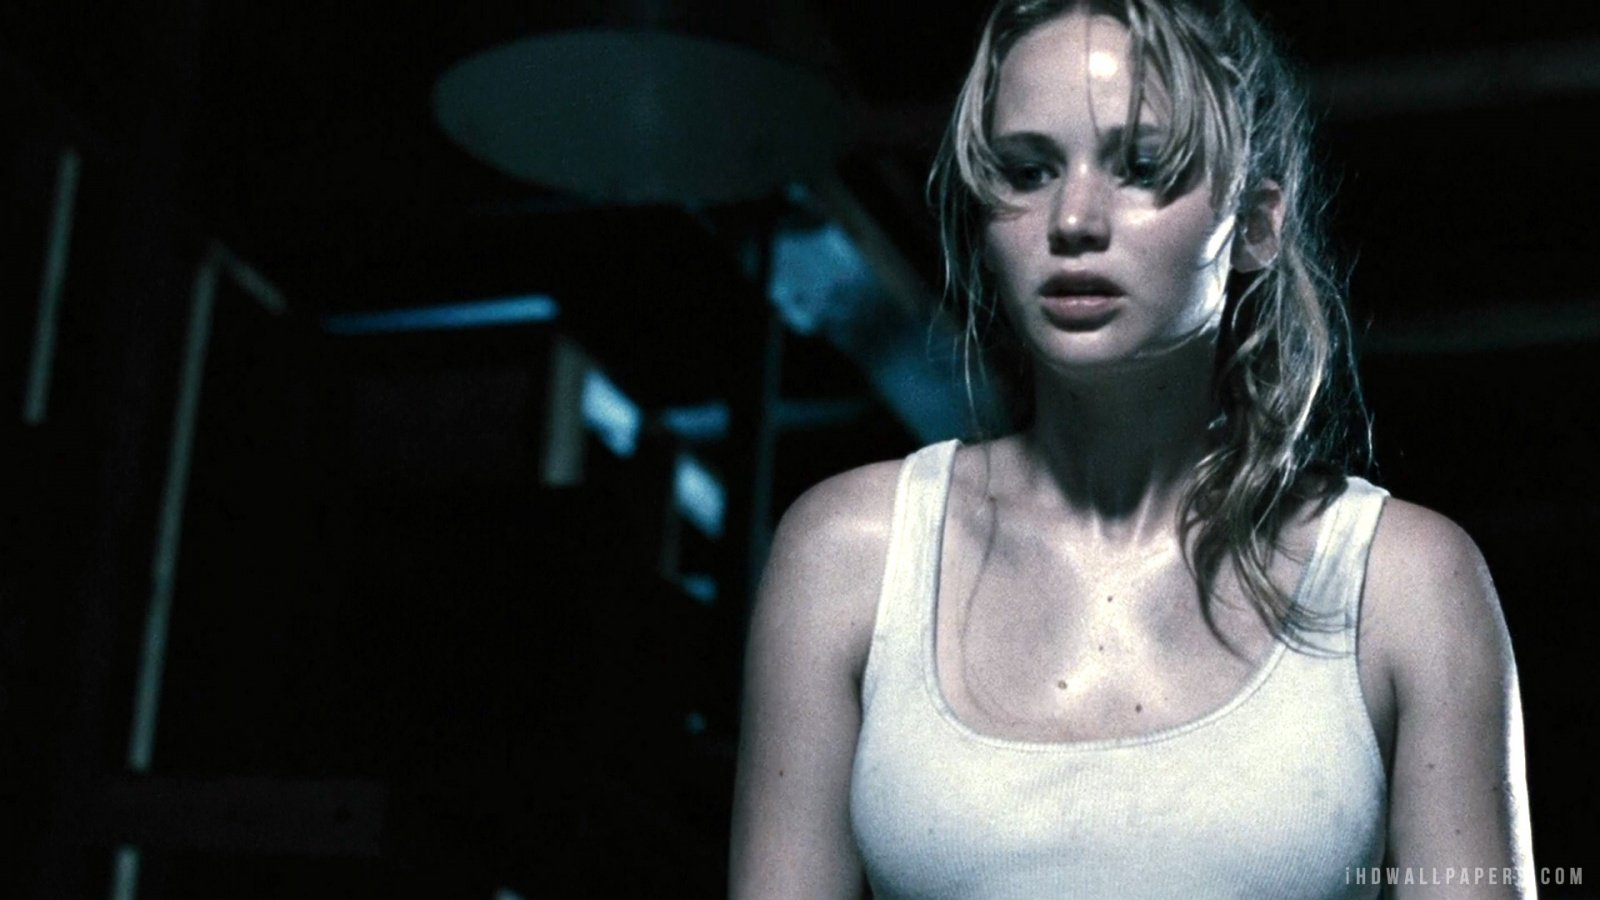 Jennifer Lawrence Horror Movie HD Wallpaper - iHD Wallpapers